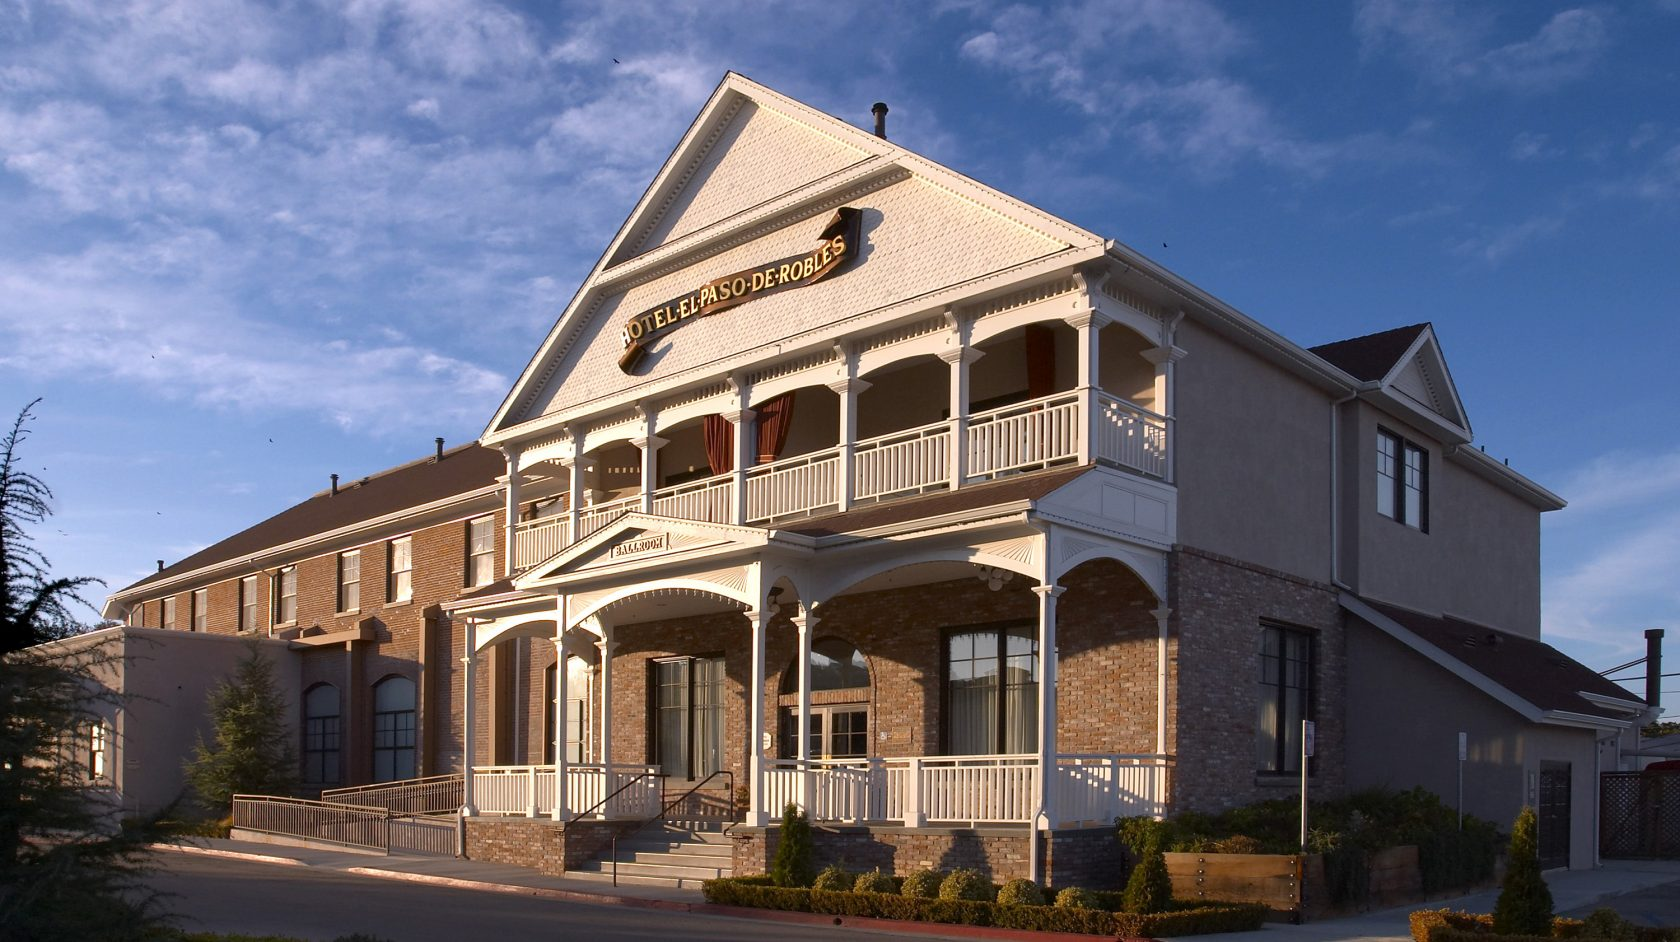 Exterior of Historic Paso Robles Inn Ballroom